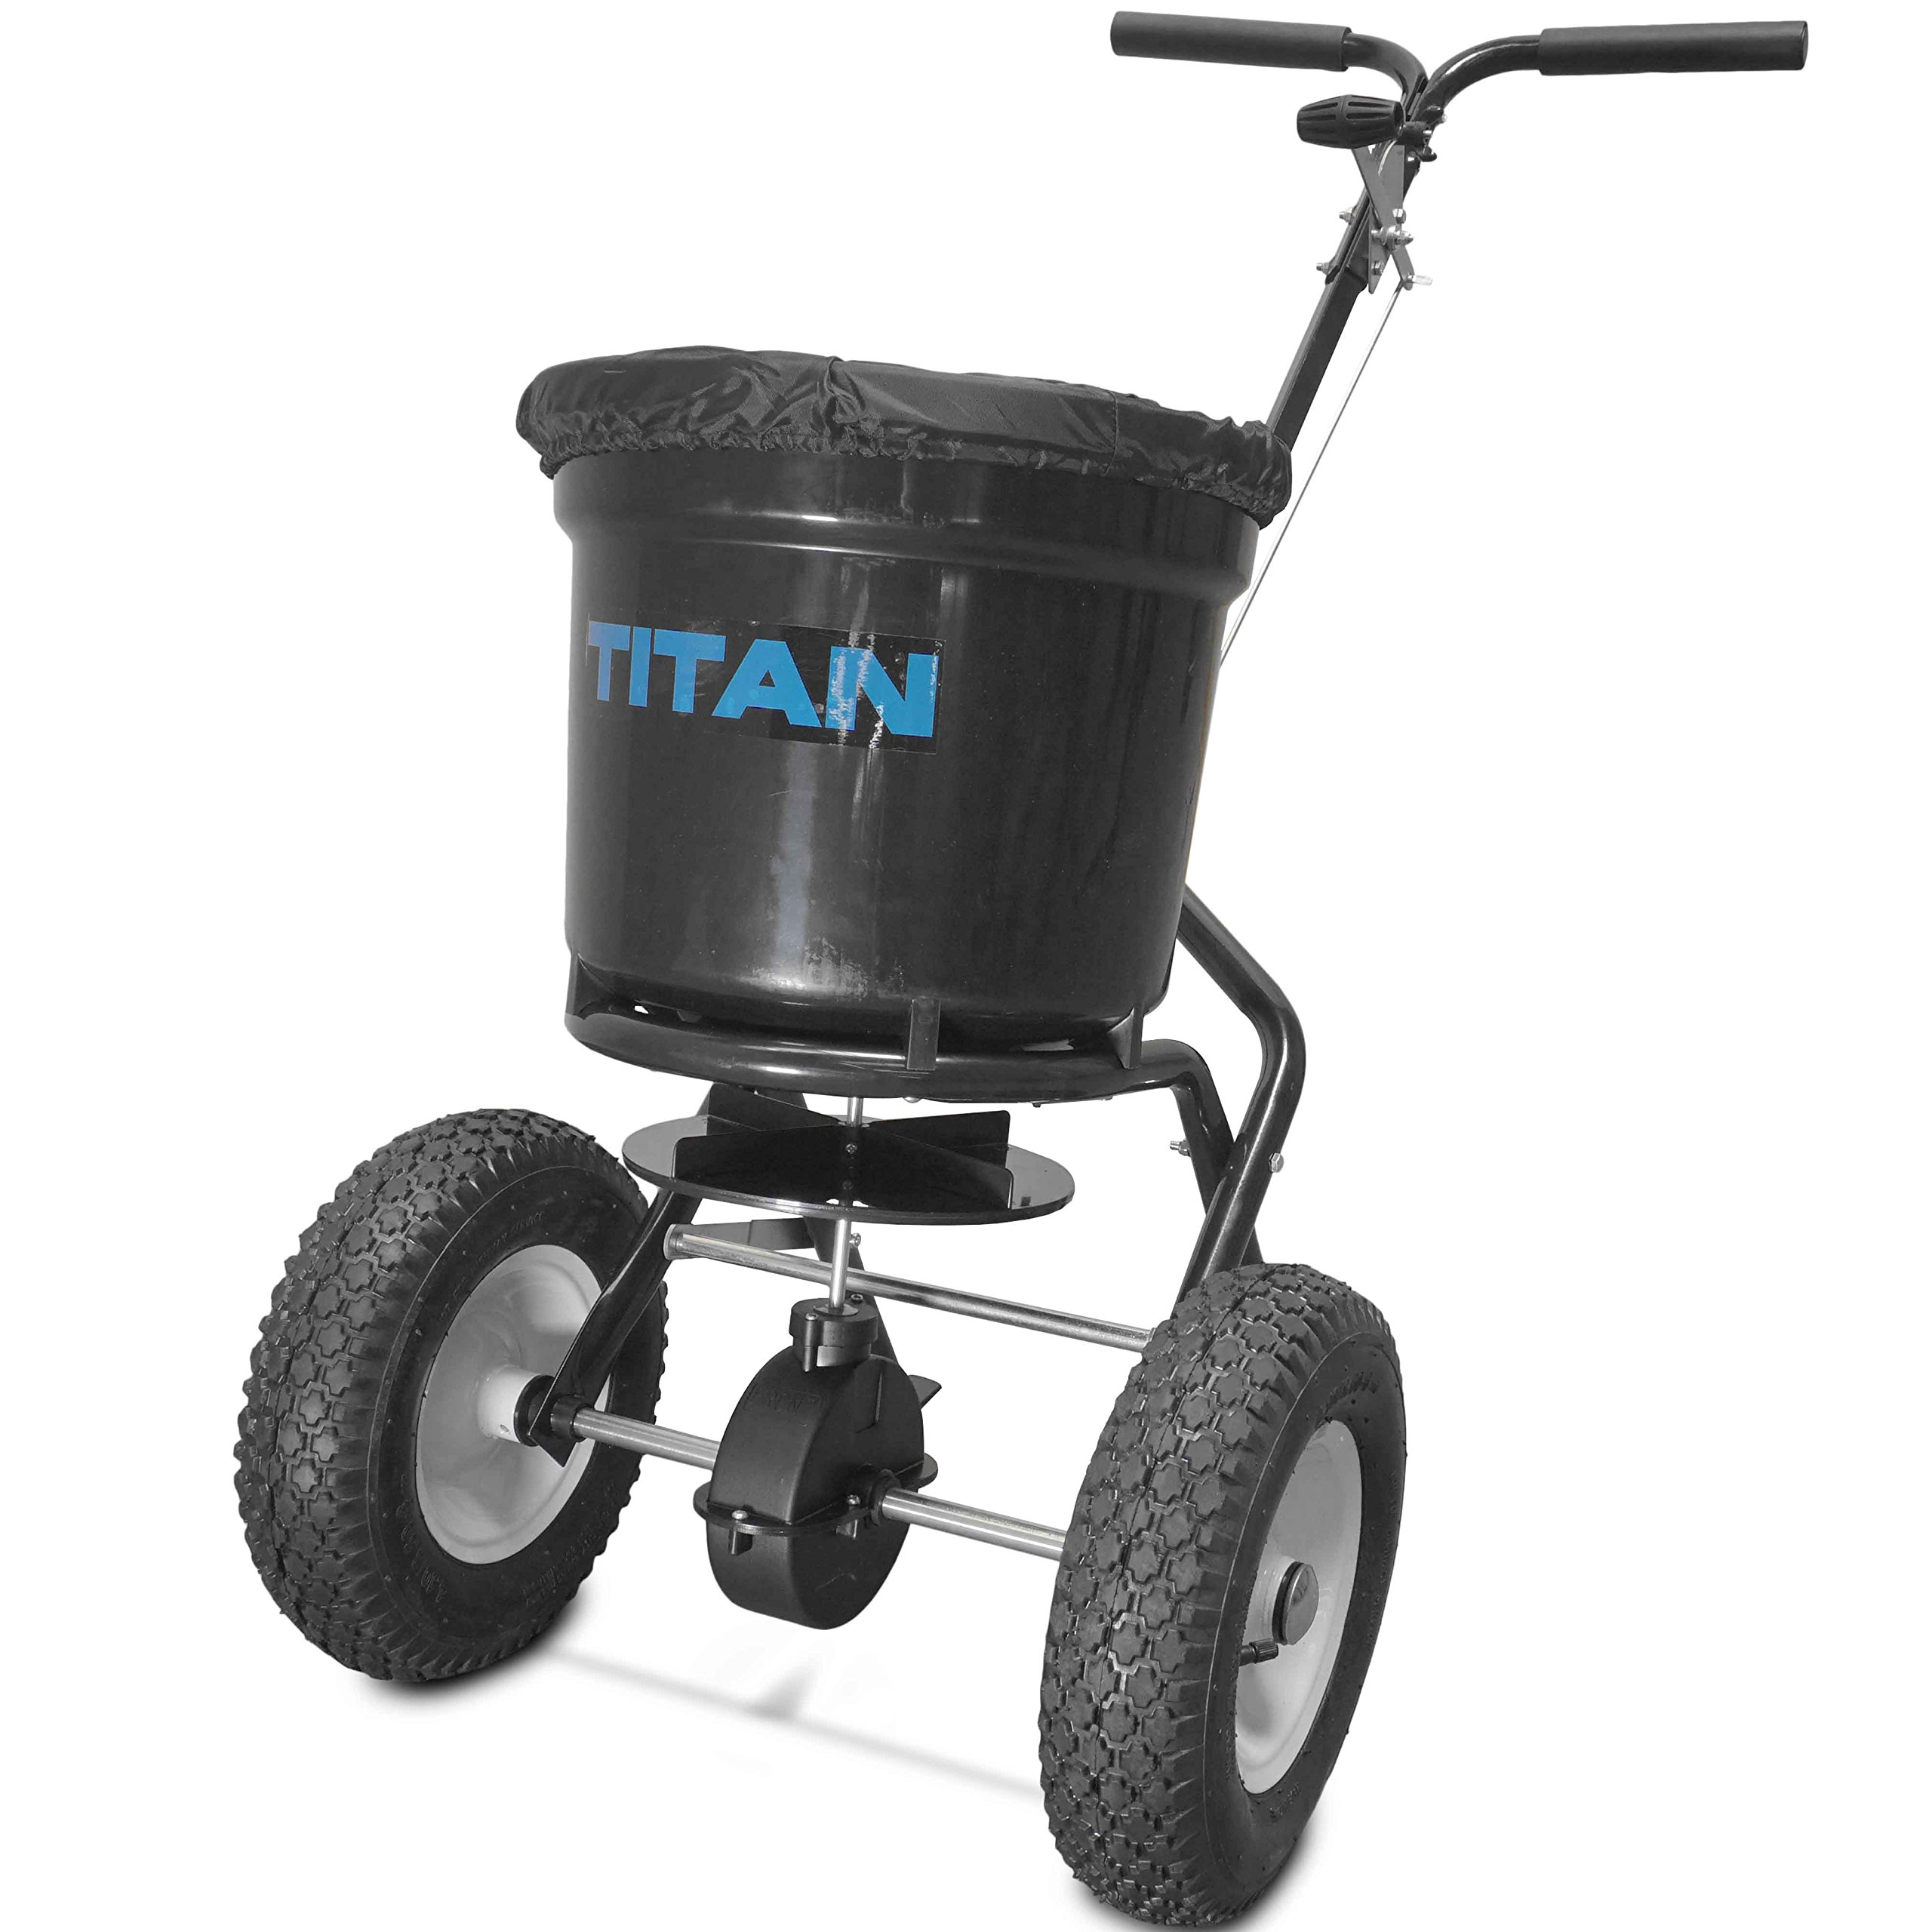 Titan 50 Lb. Fertilizer Broadcast Spreader, Lawn Care and Ice Melter Yard Tool by Titan Attachments